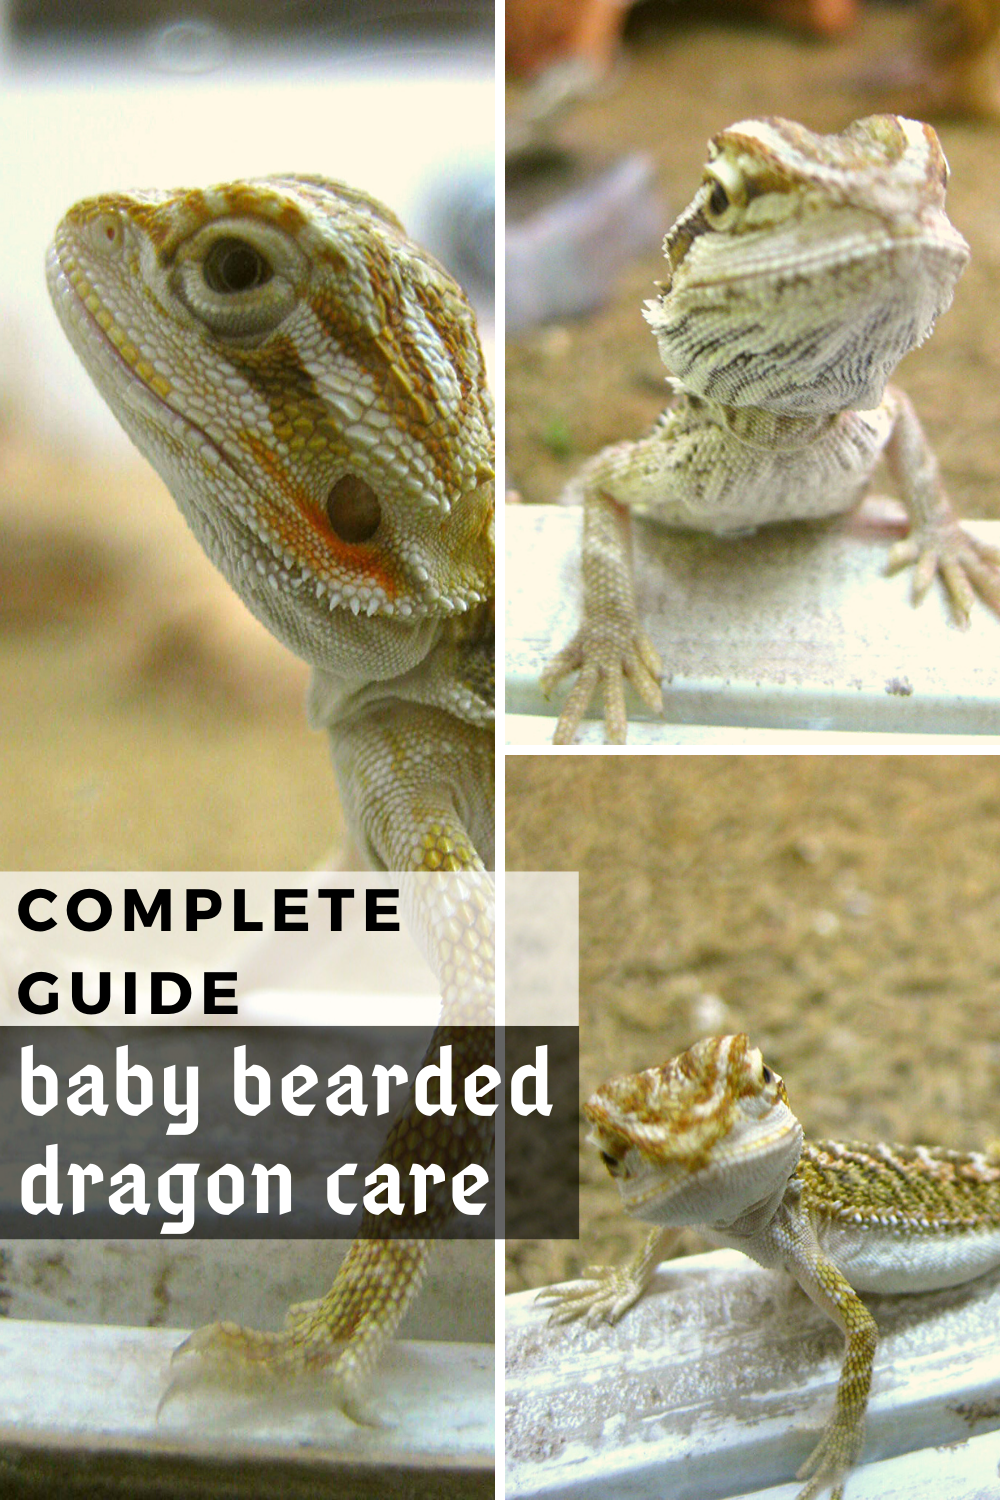 Baby bearded dragon care is a subject that every beginner owner should be familar about if they want to be a successful breeder or owner. There are multiple aspects to this, such as how to select a healthy baby bearded dragon, how to set up the terrarium for them, what are some of the best heat lamp and substrate liner flooring recommendations, accessories as well as what is a good healthy baby bearded dragon diet makeup. Photo Credit-Brenna, Flickr. #babybeardeddragon #babybeardeddragoncare